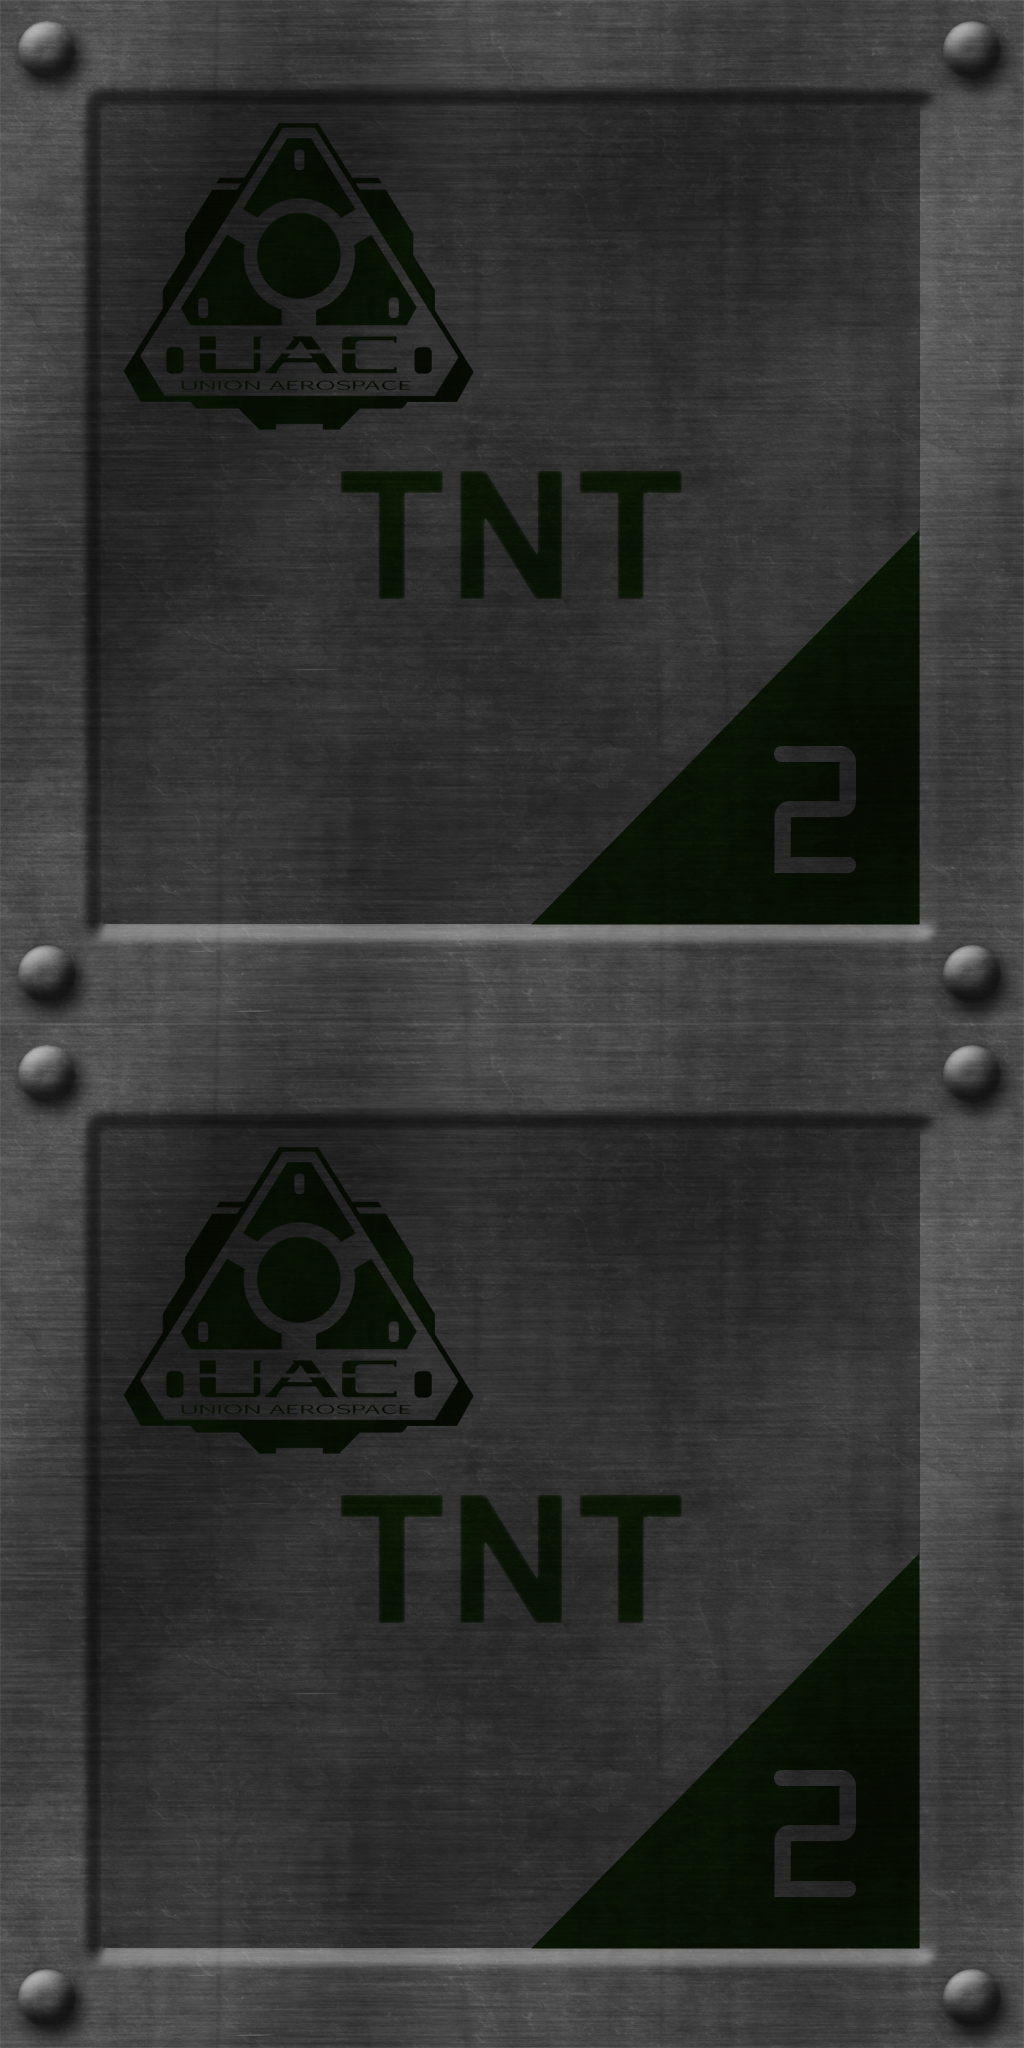 Grey TNT Crates by Hoover1979